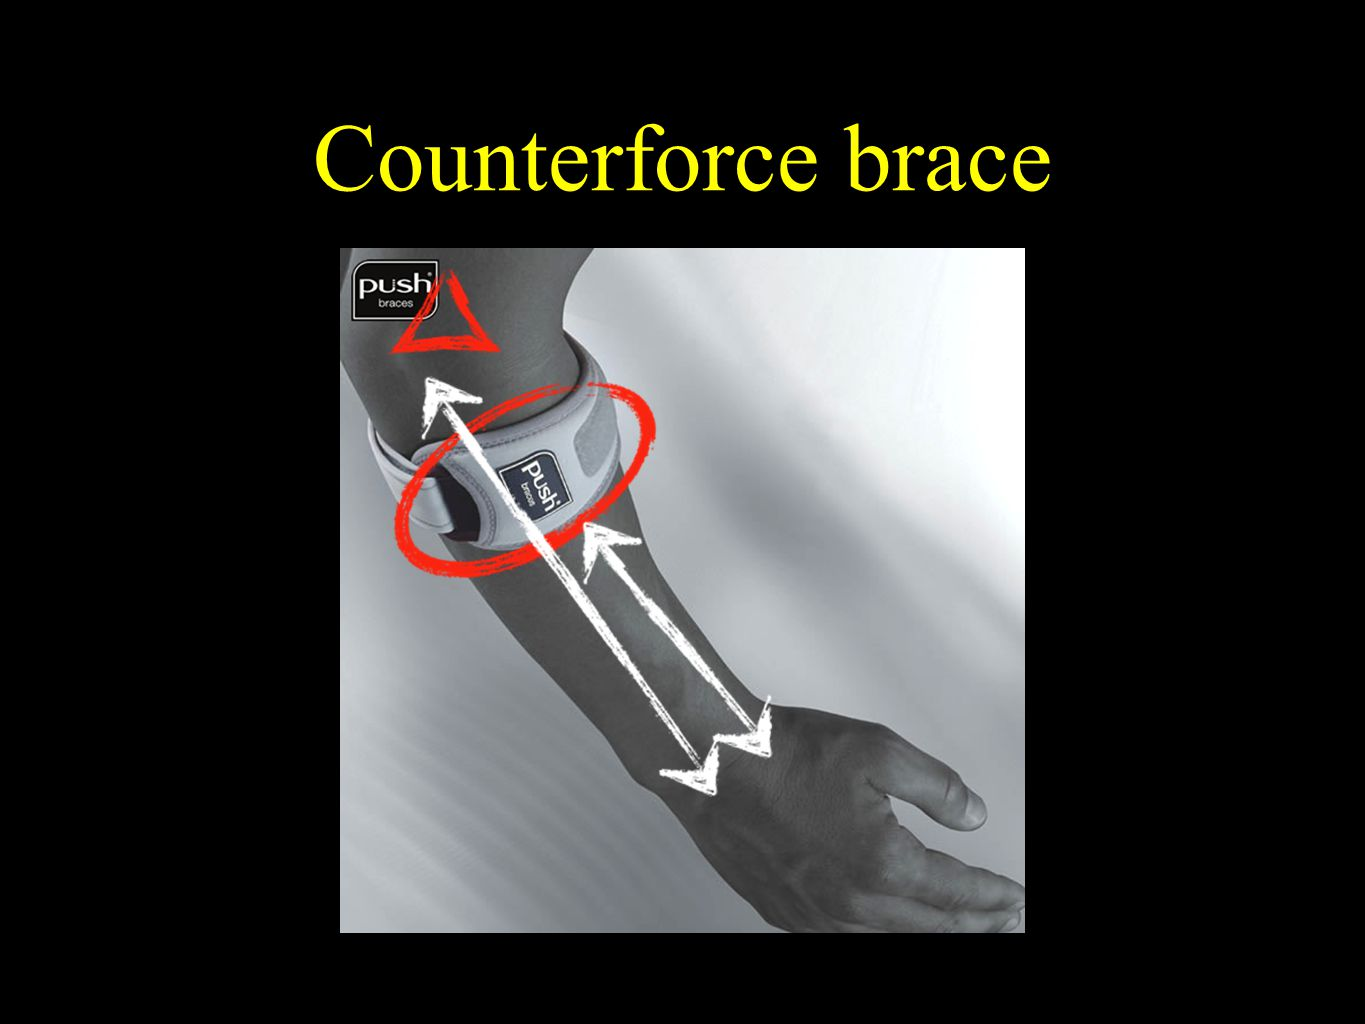 Counterforce brace